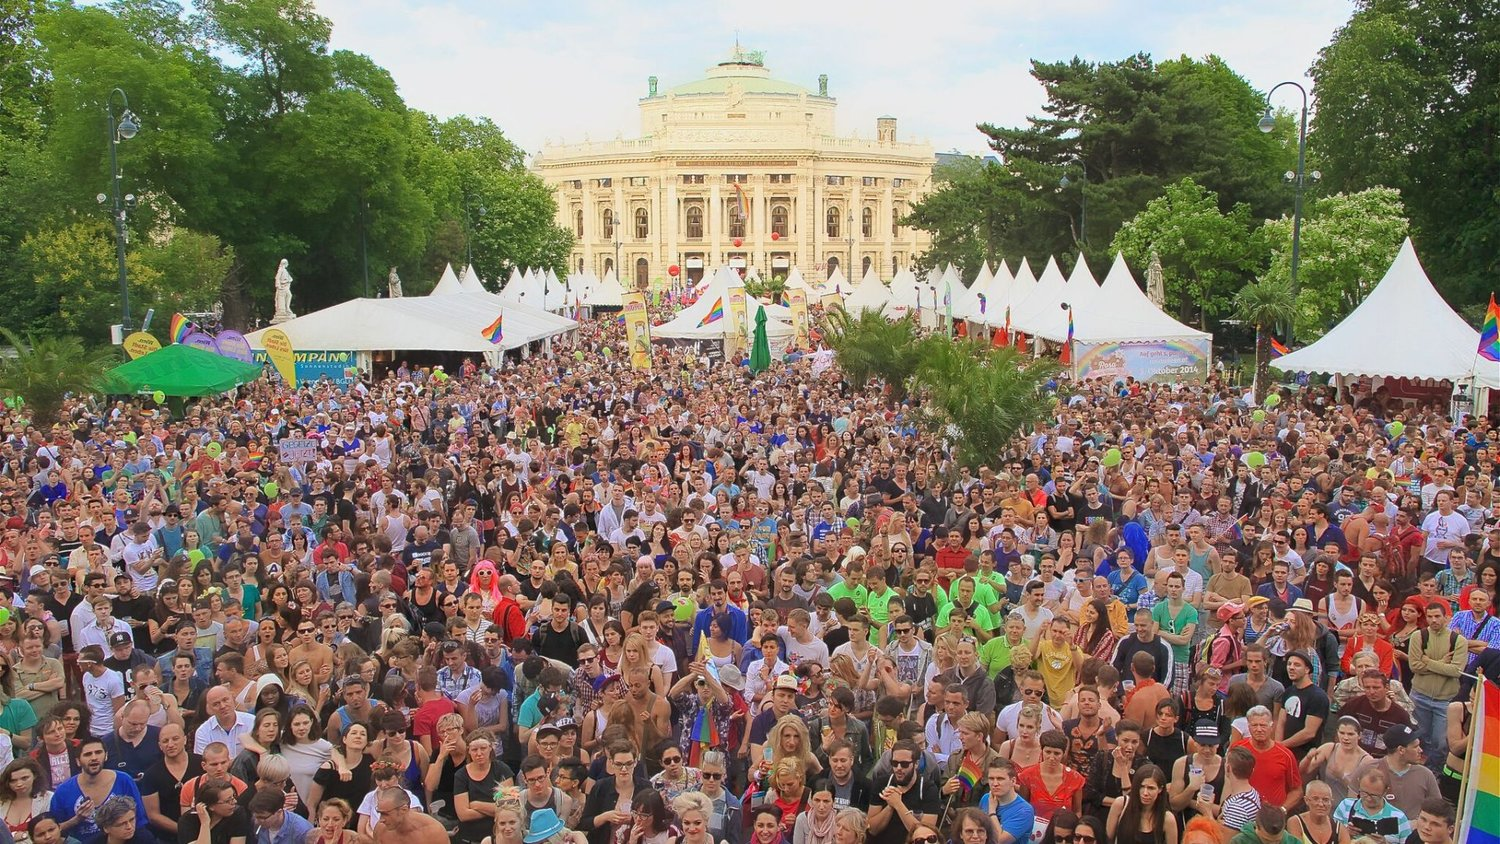 March with us in Vienna! - This year Vienna will be the home of EuroPride 2019, with the march taking place on 15 June under the motto of